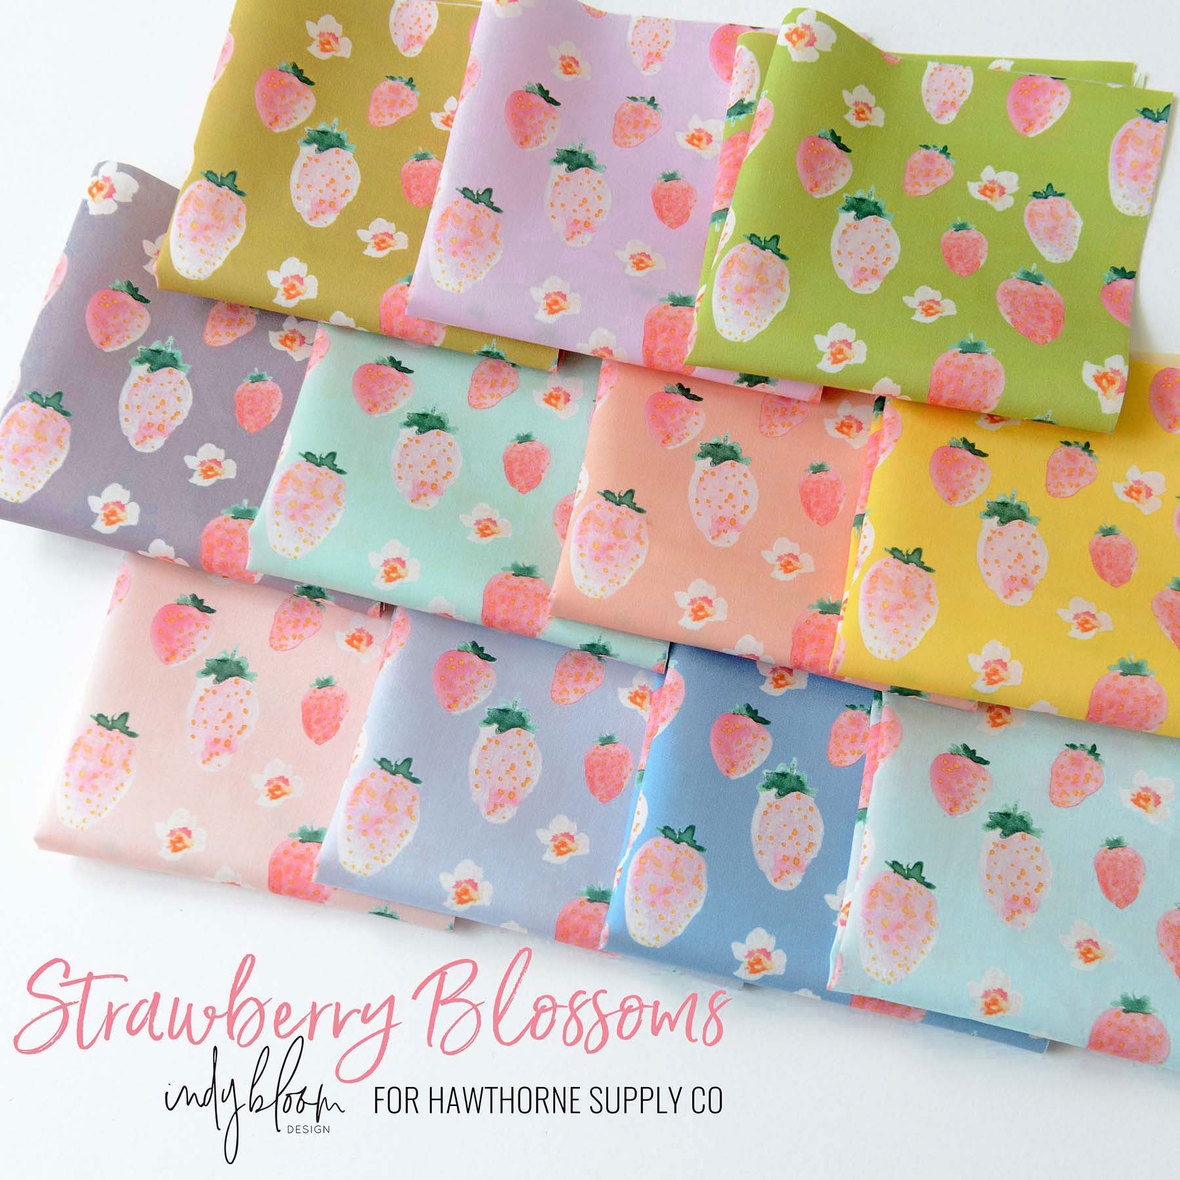 New-Strawberry-Blossoms-Fabric-Poster-Indy-Bloom-for-Hawthorne-Supply-Co